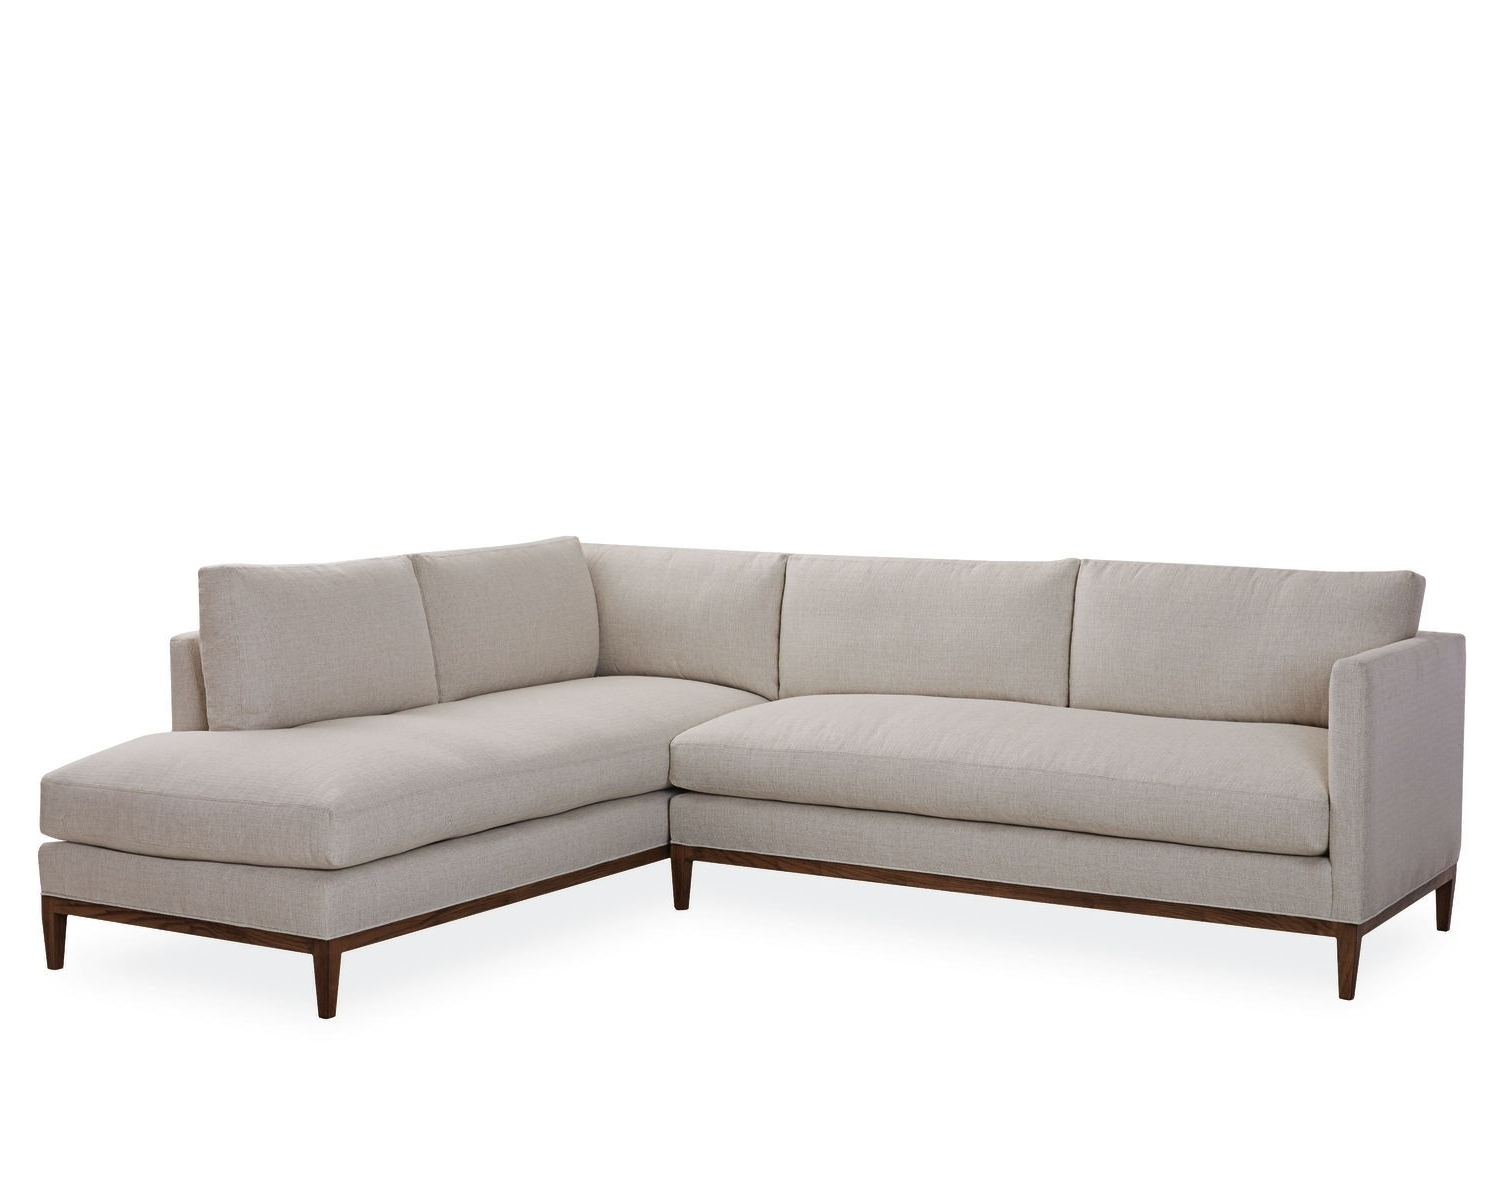 Best And Newest Lee Industries Sectional Sofas In American Furniture (View 12 of 20)